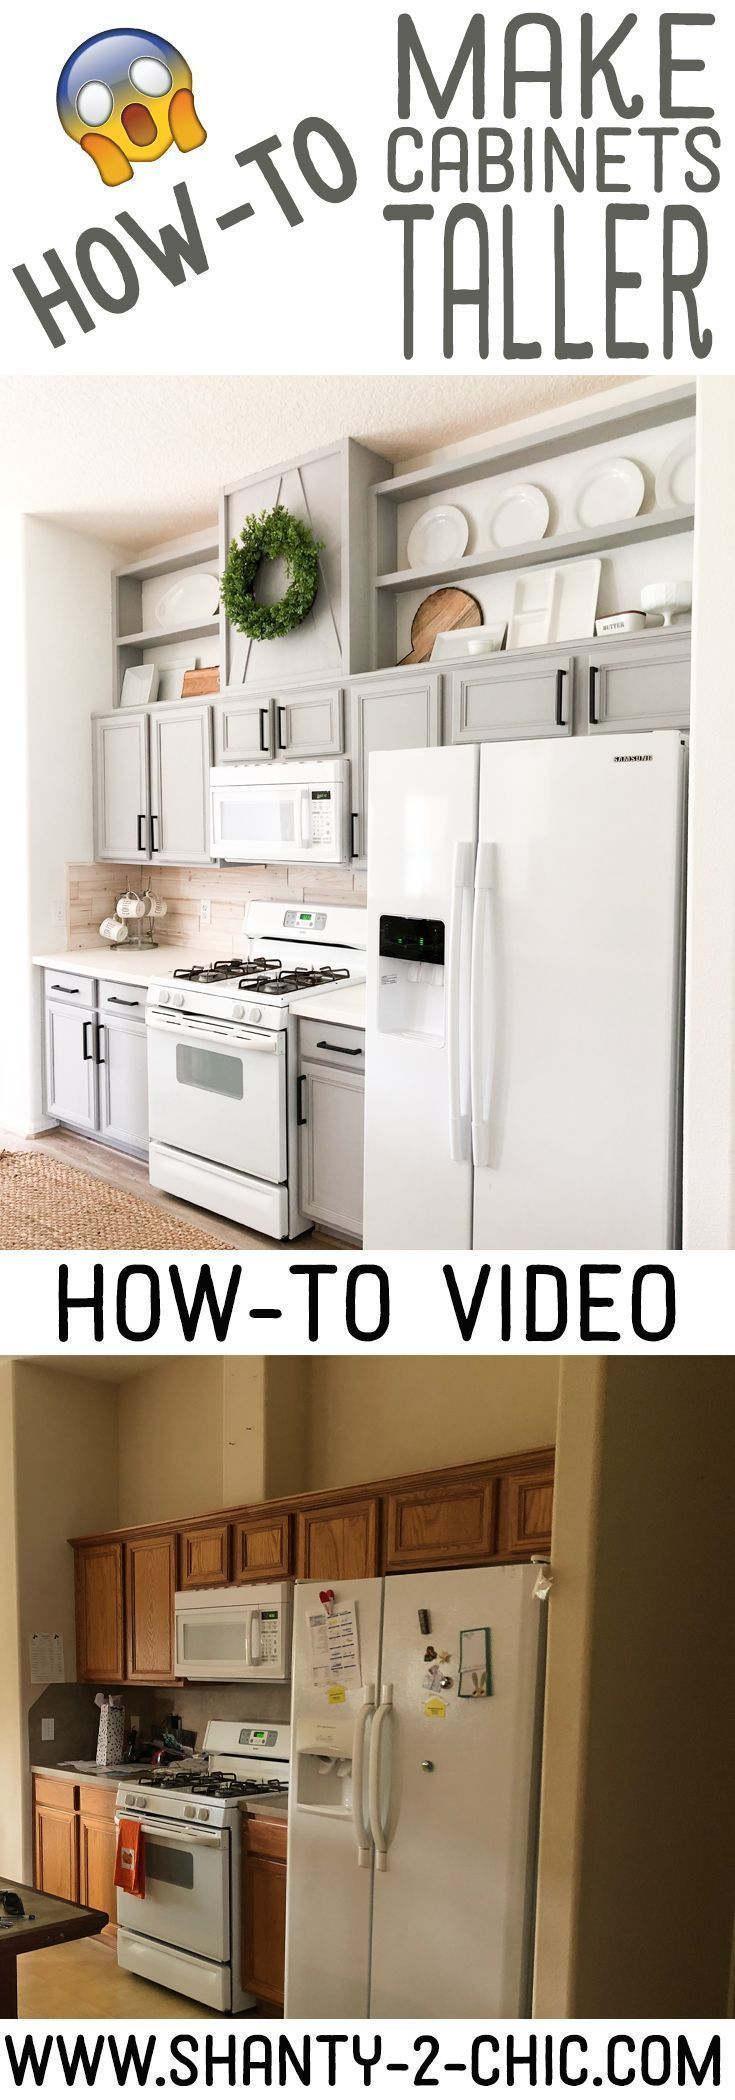 how to make cabinets taller home improvement home remodeling diy rh pinterest com